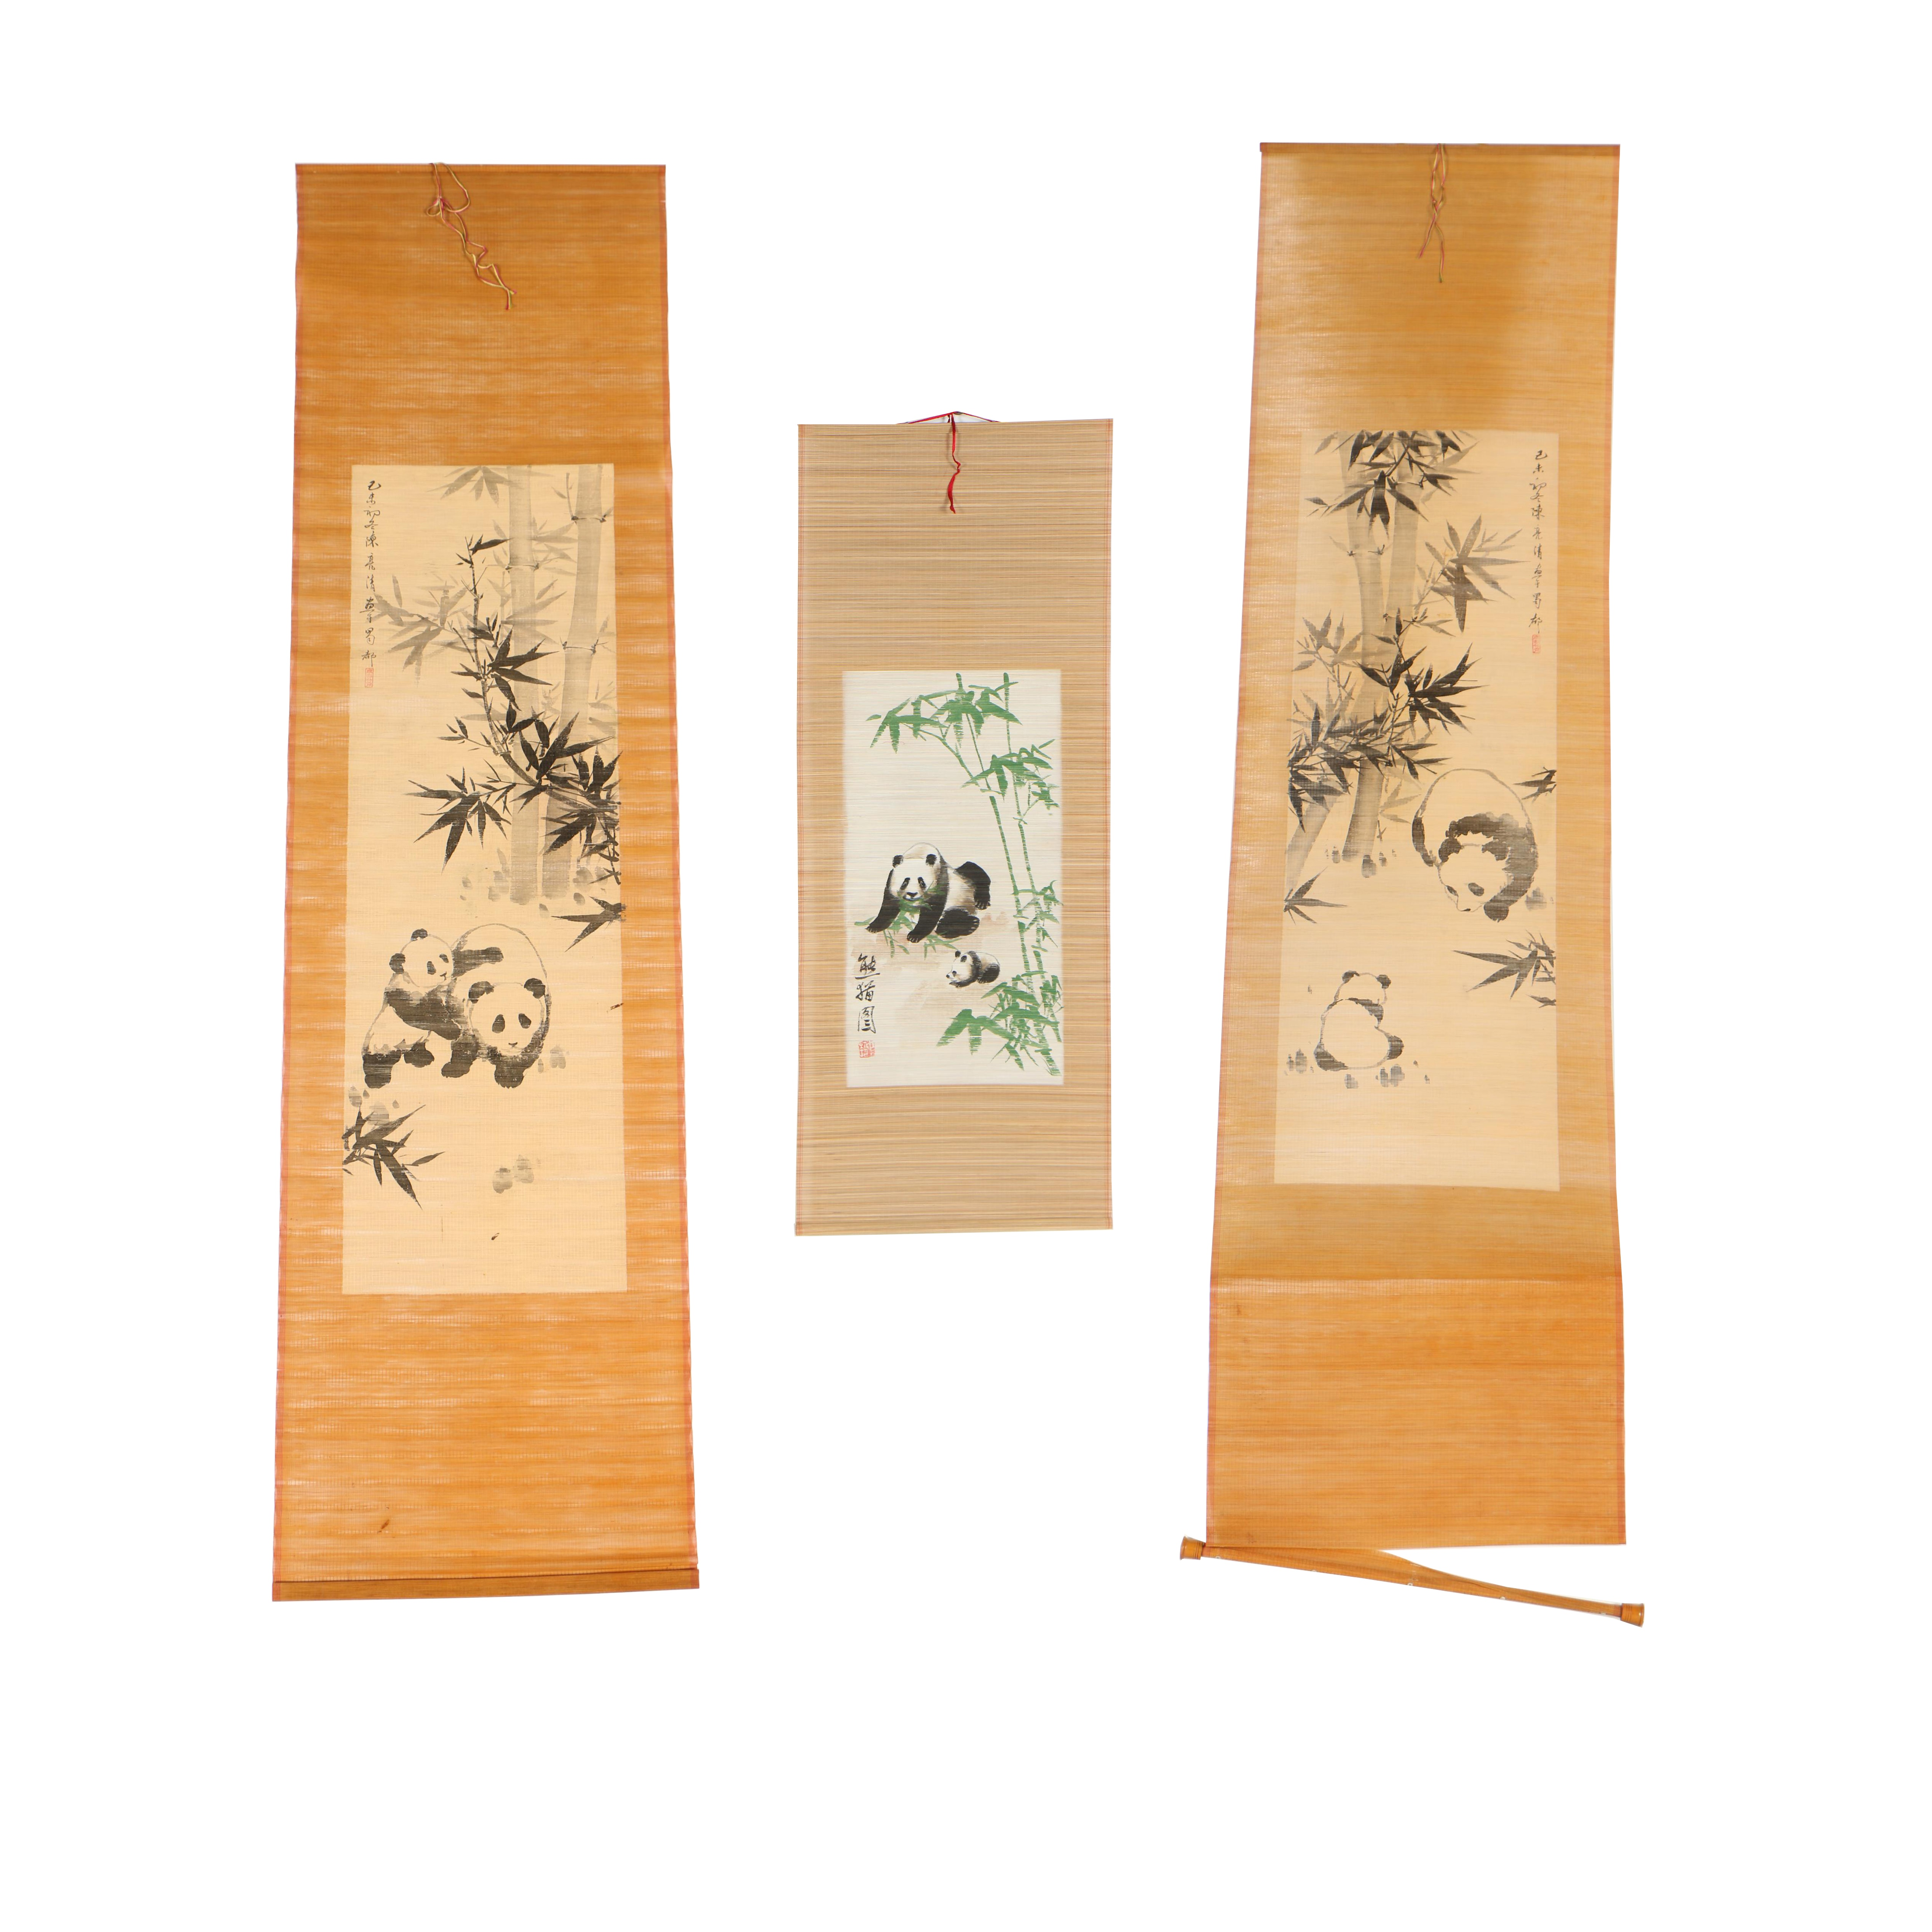 Chinese Ink Drawings and Gouache Painting on Bamboo